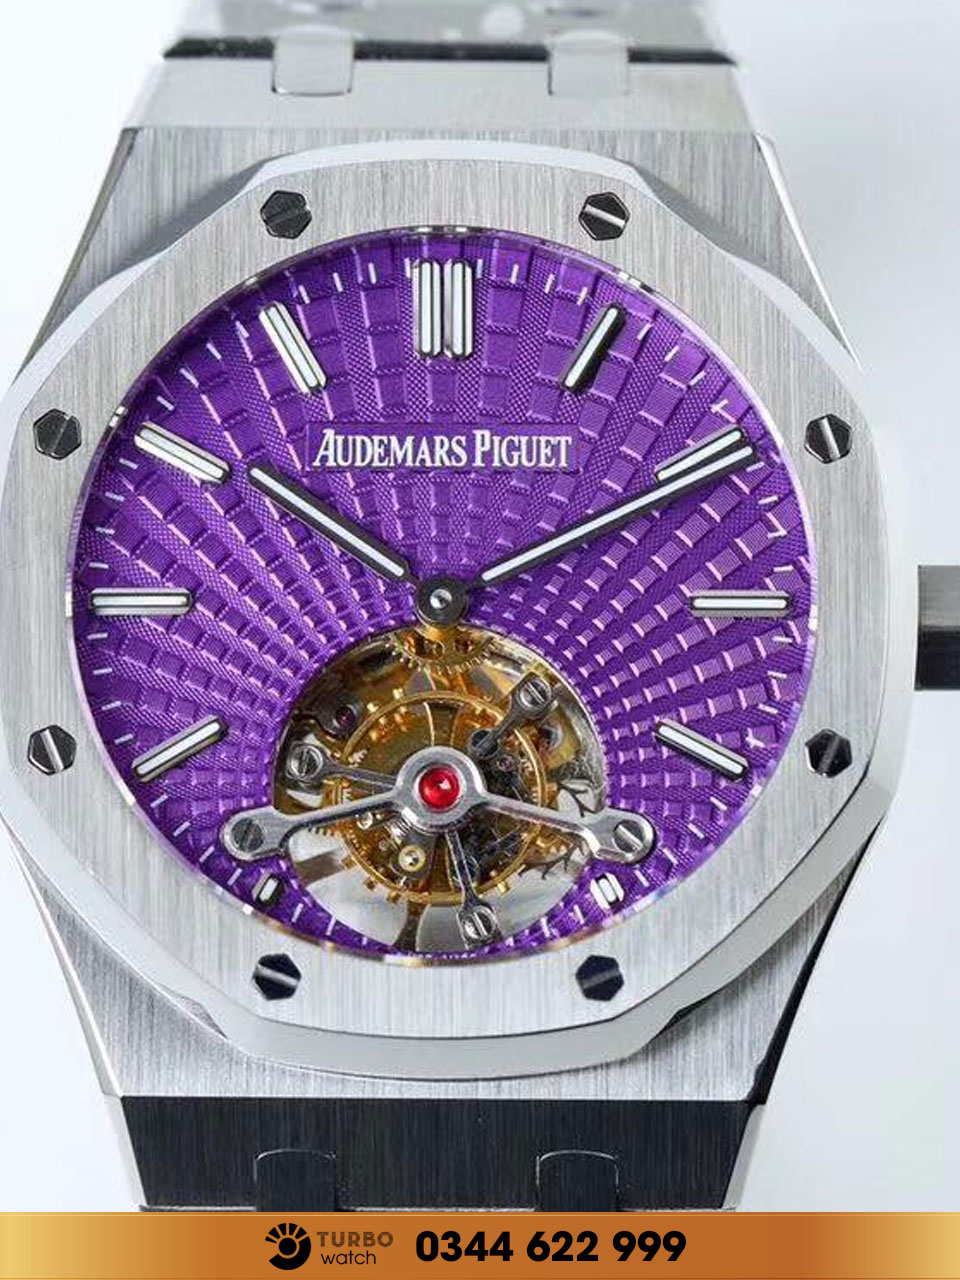 Audemas piguet  Royal Oak Tourbillon Extra-Thin  purple face replica 1-1 cao cấp